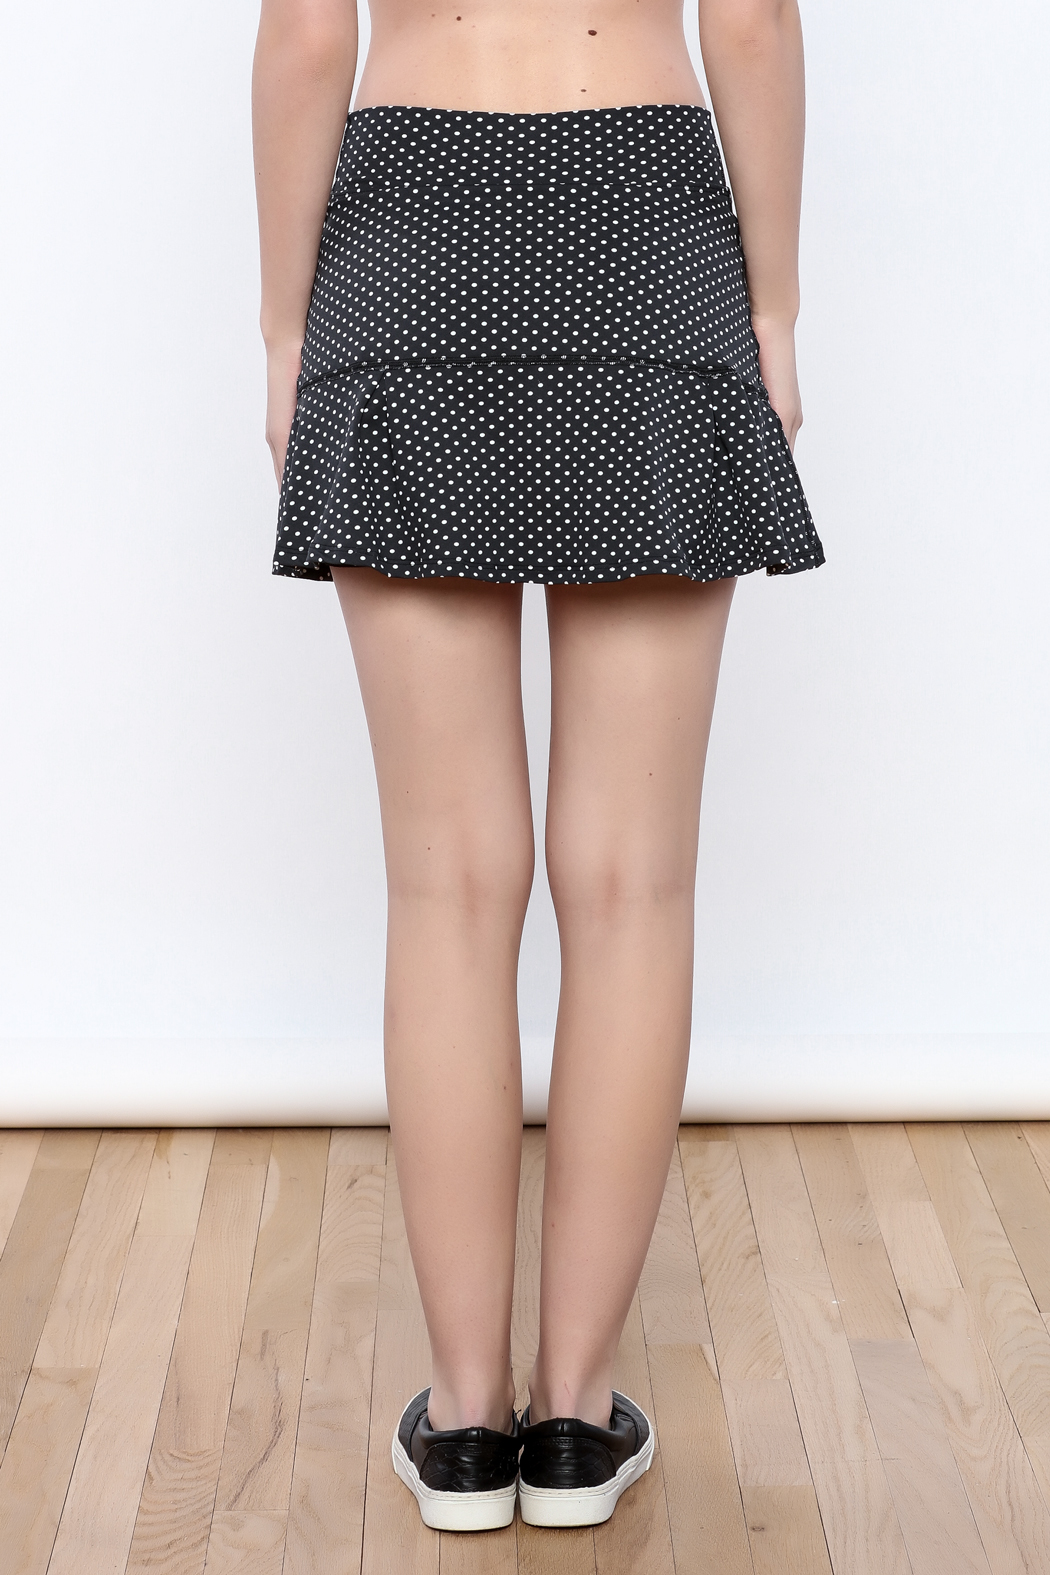 Dona Jo Polka Dot Tennis Skirt - Back Cropped Image